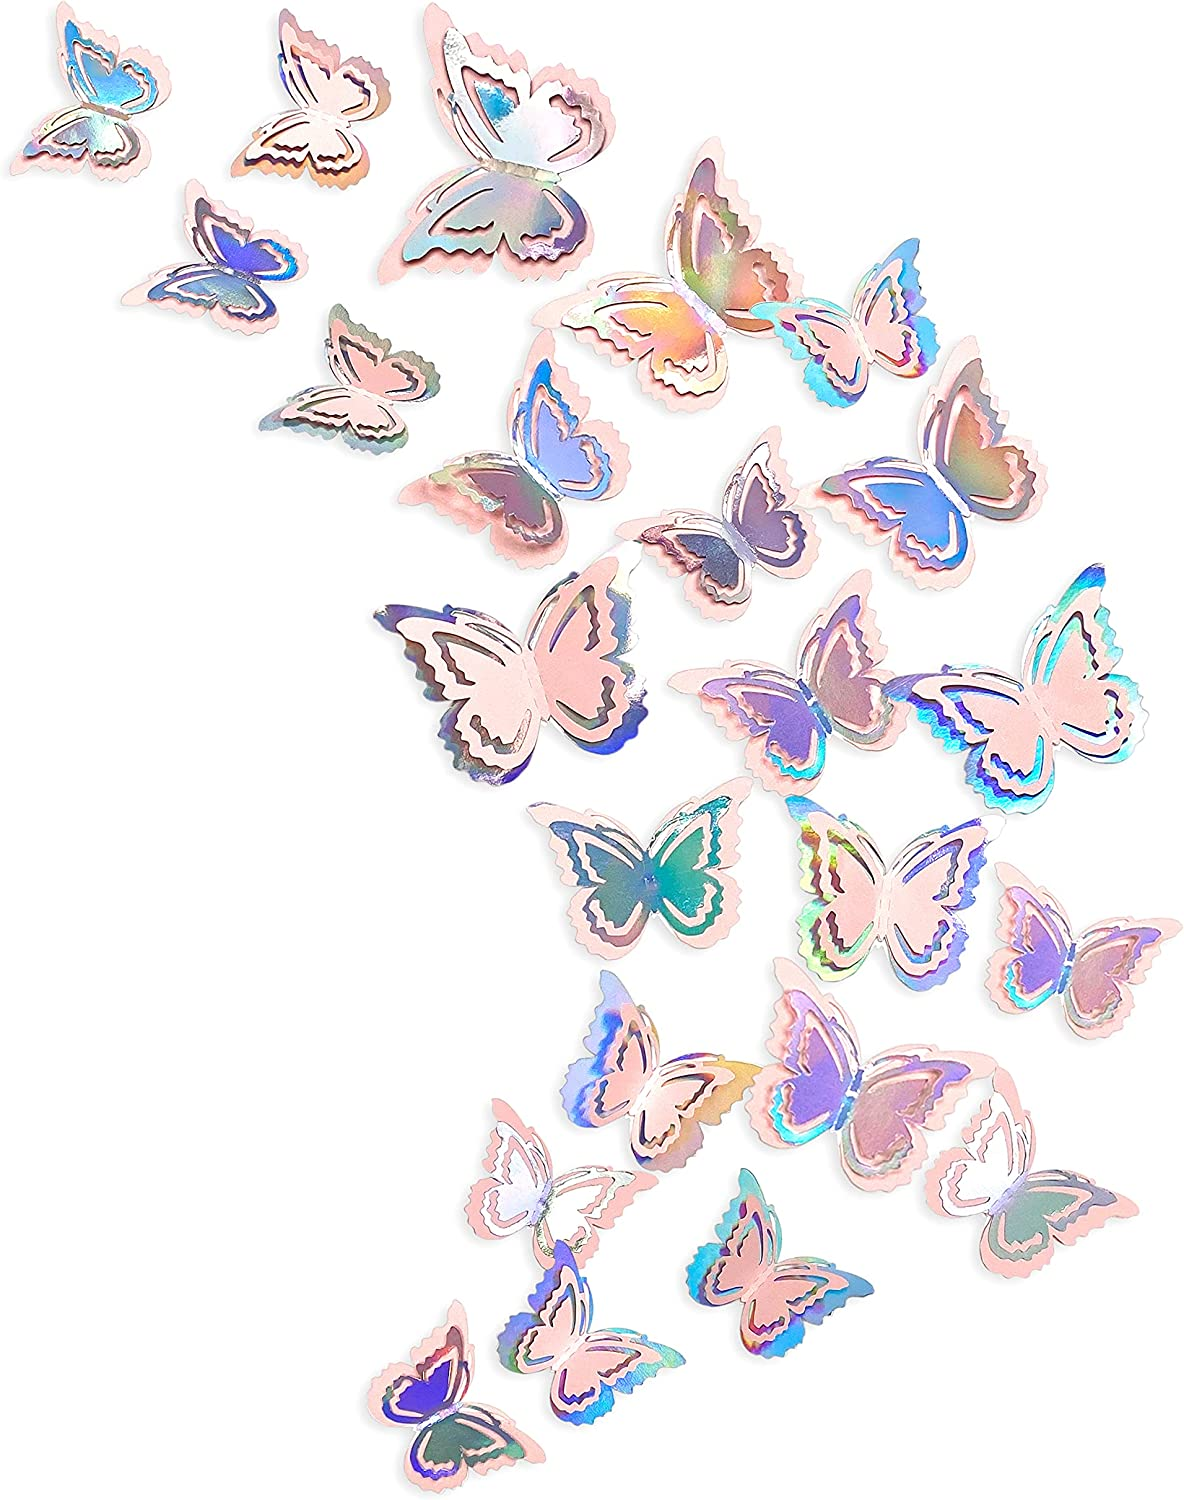 pinkblume Iridescent Pink Butterfly Decorations Stickers Blush 3D Butterfies Wall Art Removable Wall Decals for Holographic Unicorn Pastel Home Living Room Baby Bedroom Showcase Nursery Decor (27PCS)